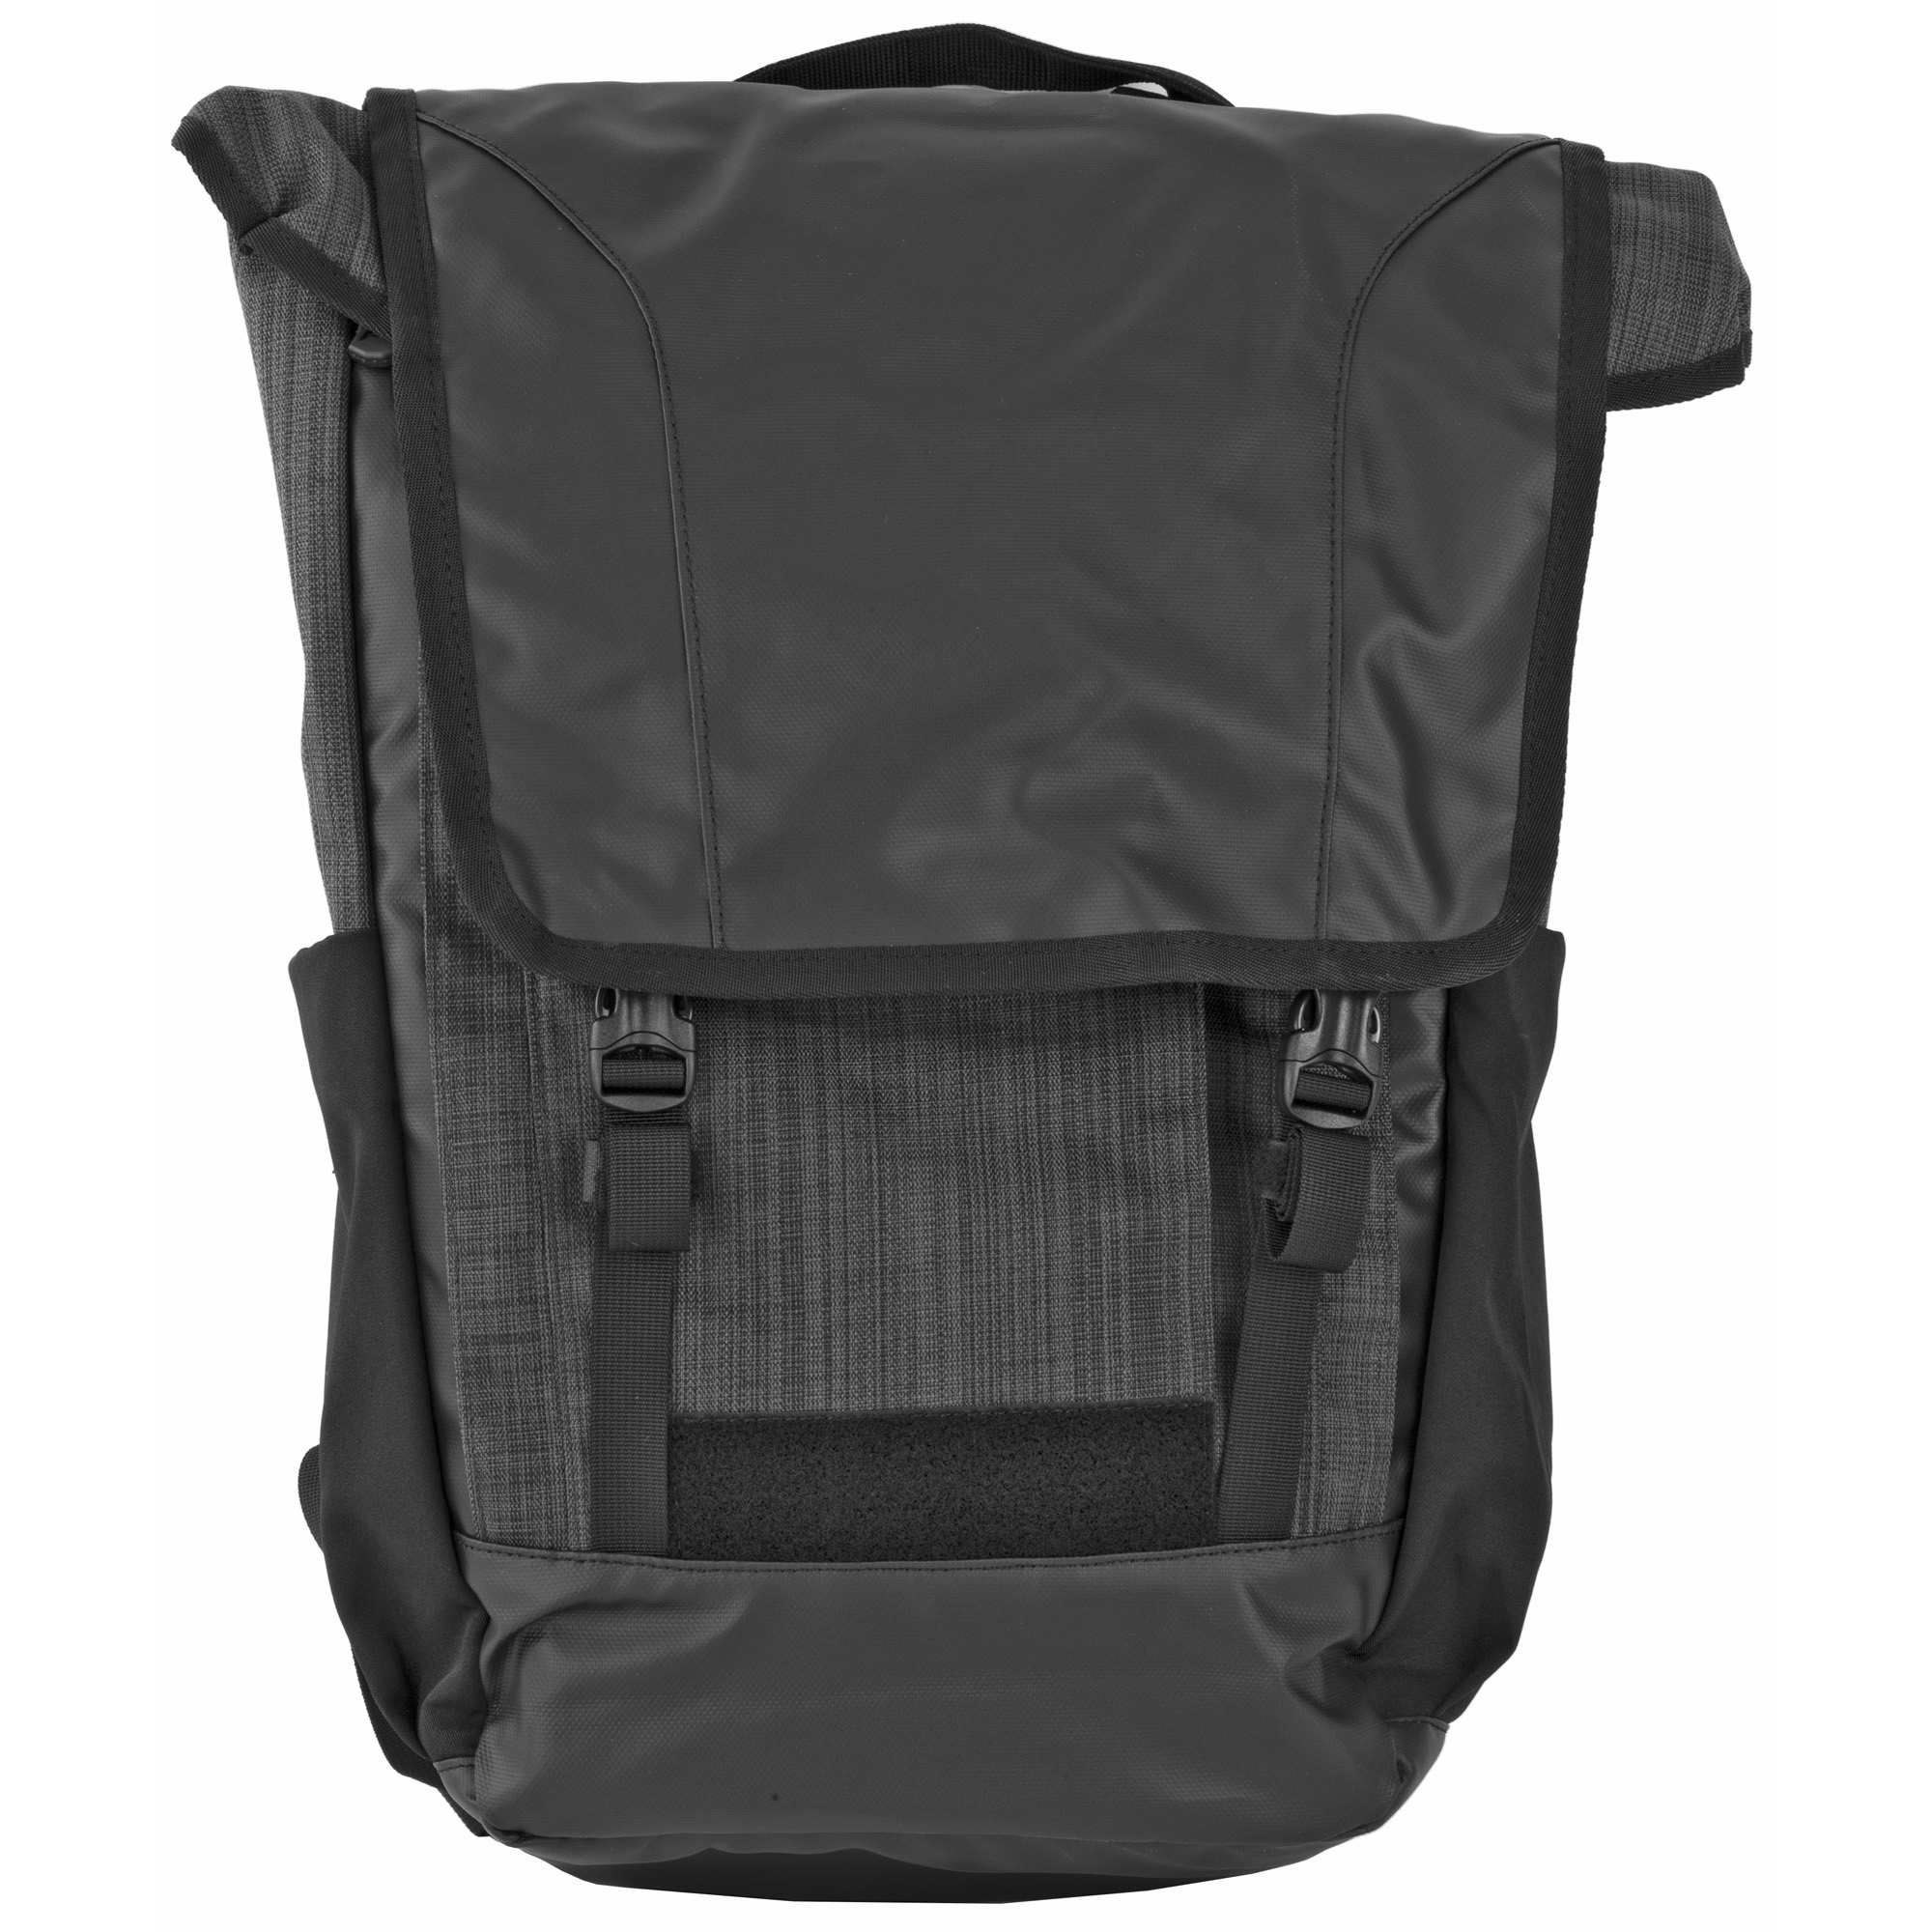 """When space and weight are important"""" this grab-and-go Last Call pack is perfect for keeping your essential tools close at hand. The gear in your CCW compartment is just a tug away with the Rapid Access Pull tab and the main compartment opens like a clamshell to let you load"""" find and remove items quickly and easily. The front flap quickly stows behind the MOLLE panel it covers and additional storage space is available in external pockets"""